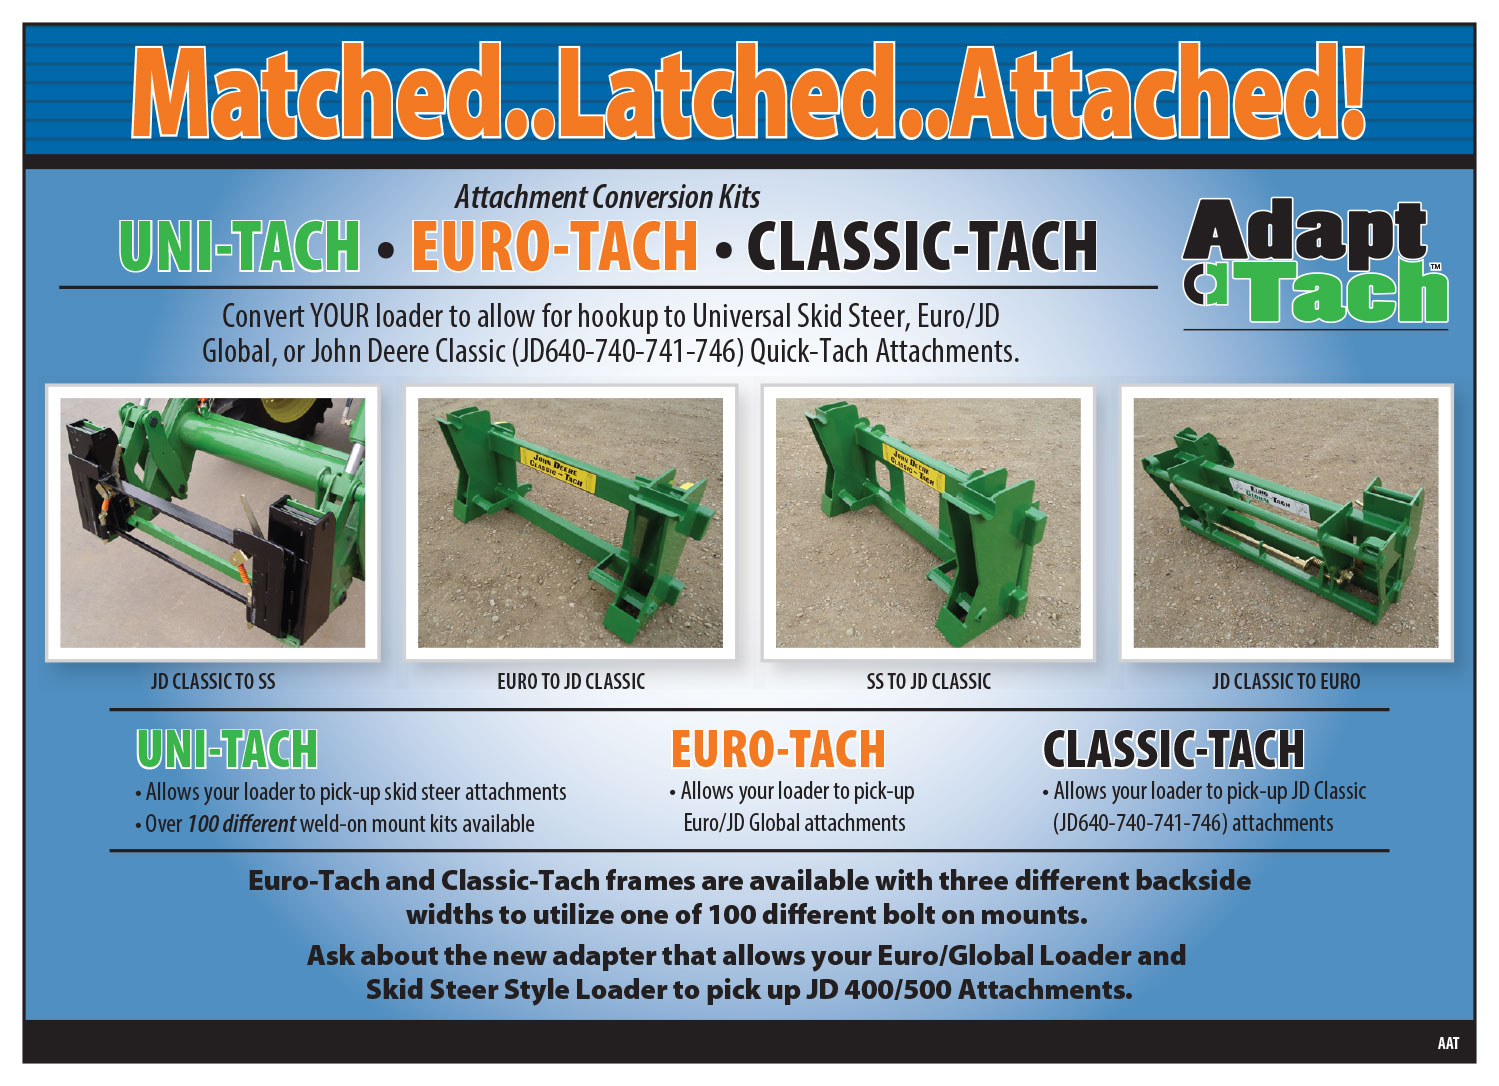 Adapt-a-tach Conversion Kits